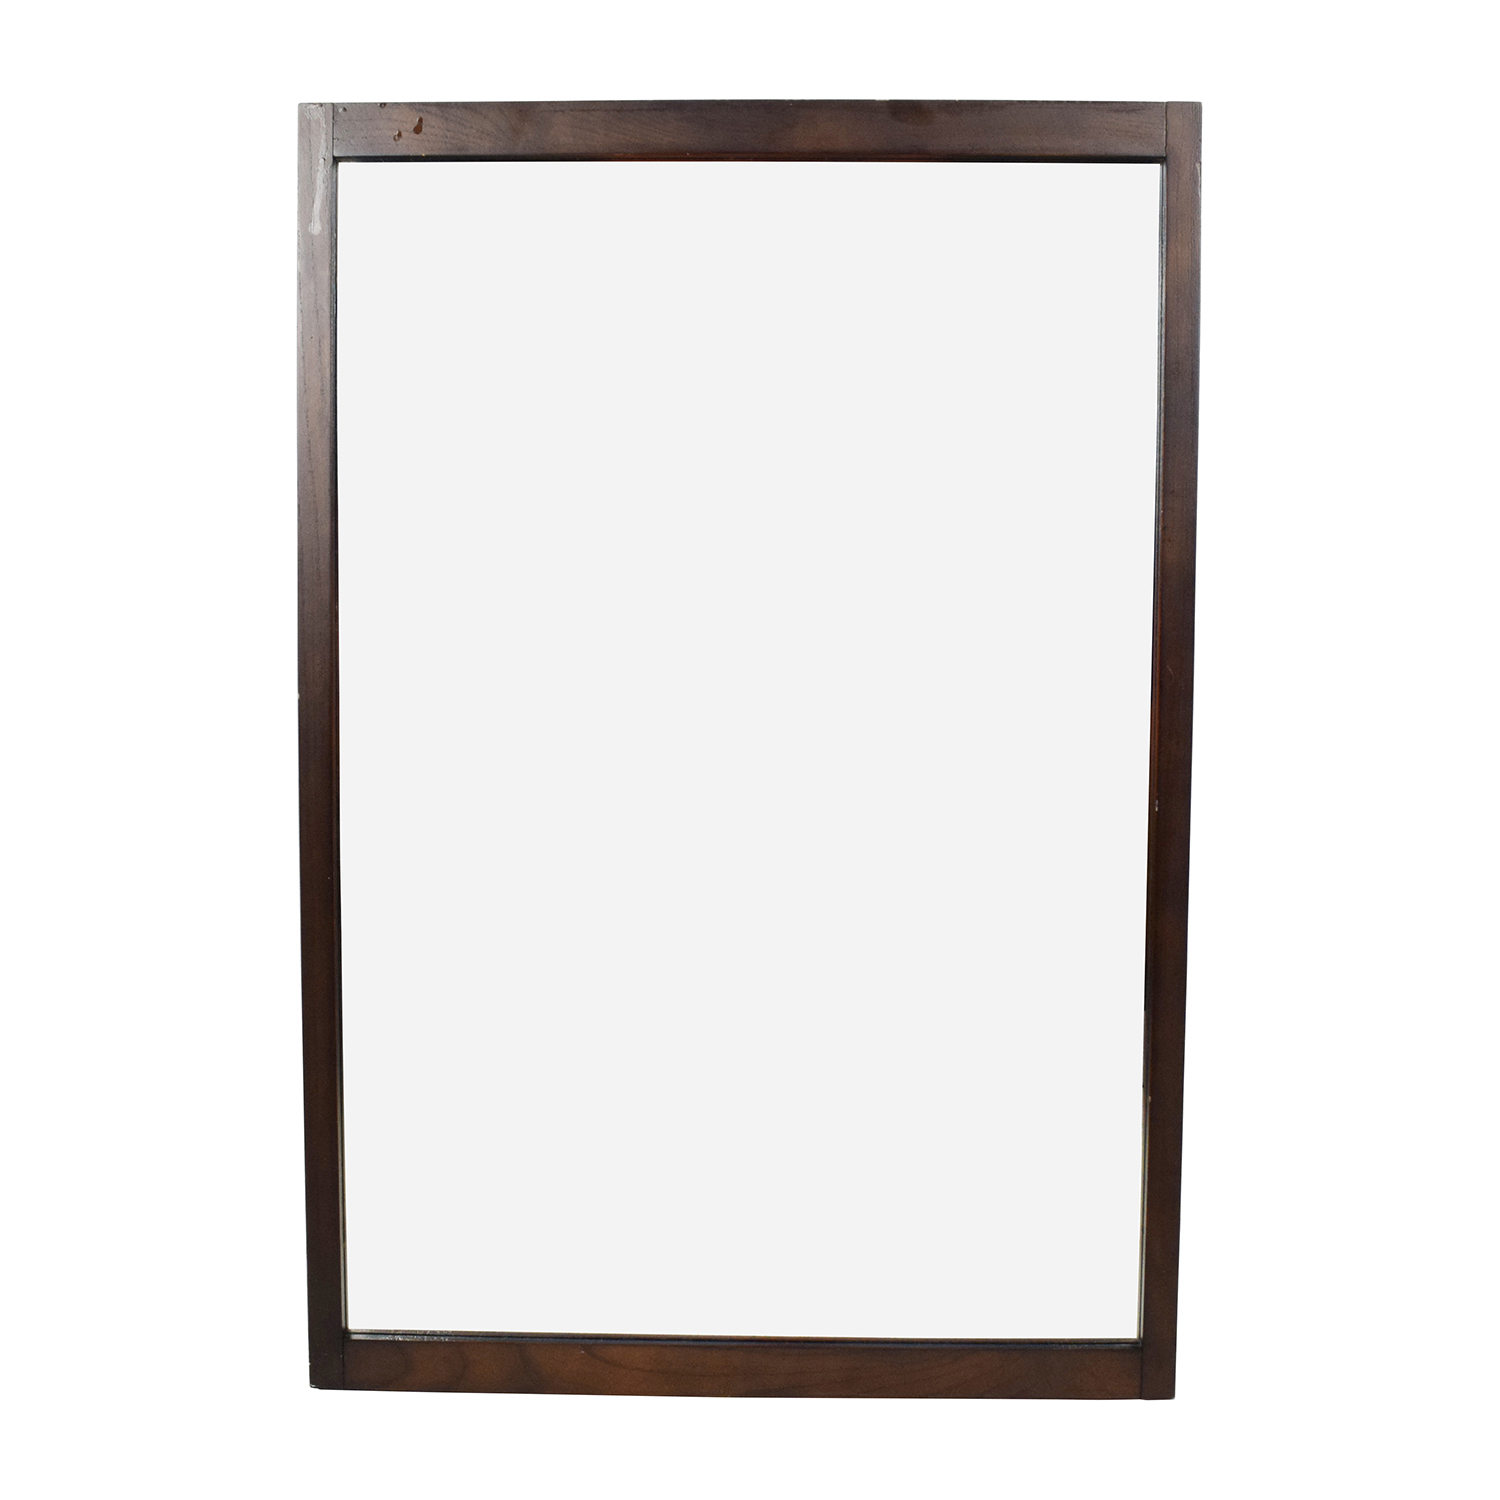 buy Pottery Barn Wood Framed Mirror Pottery Barn Mirrors